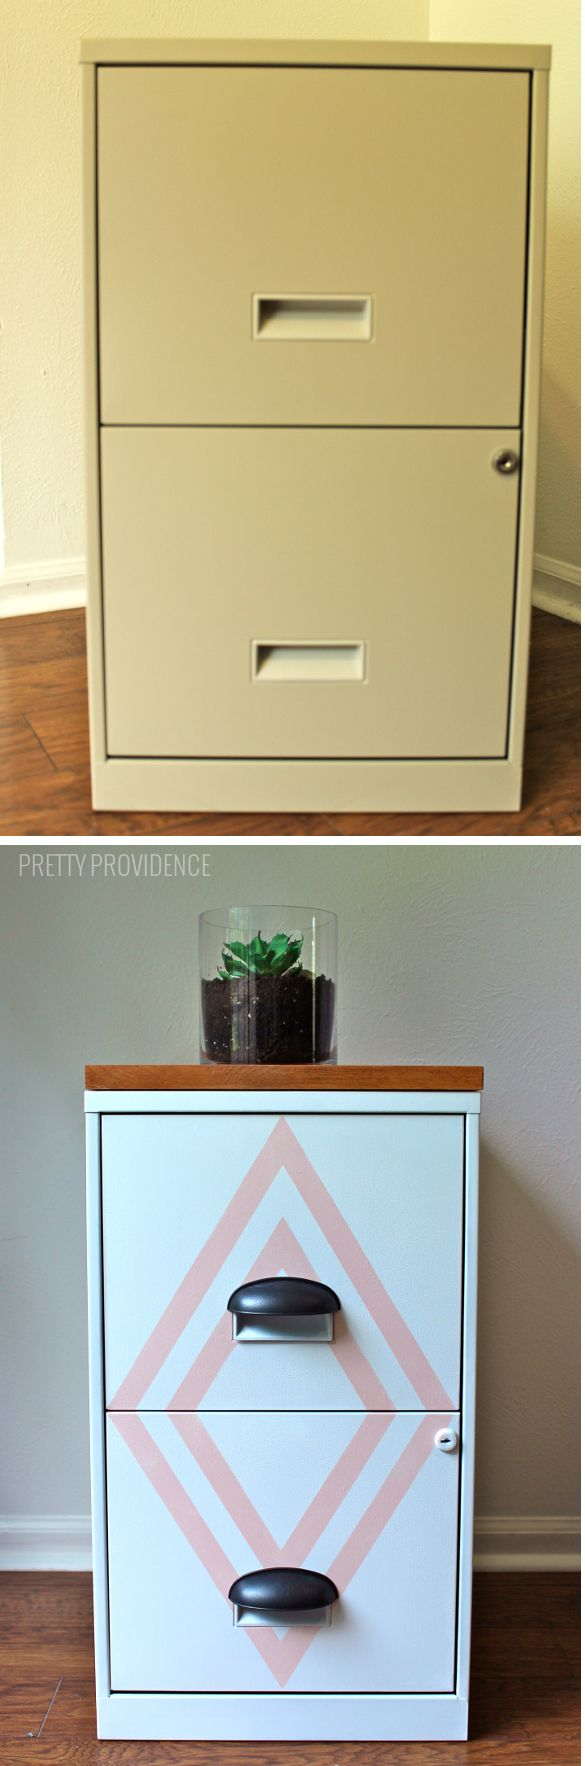 filing cabinet makeover! with a little paint, new hardware and a cute wood top you've got a stylish piece instead of an eyesore!